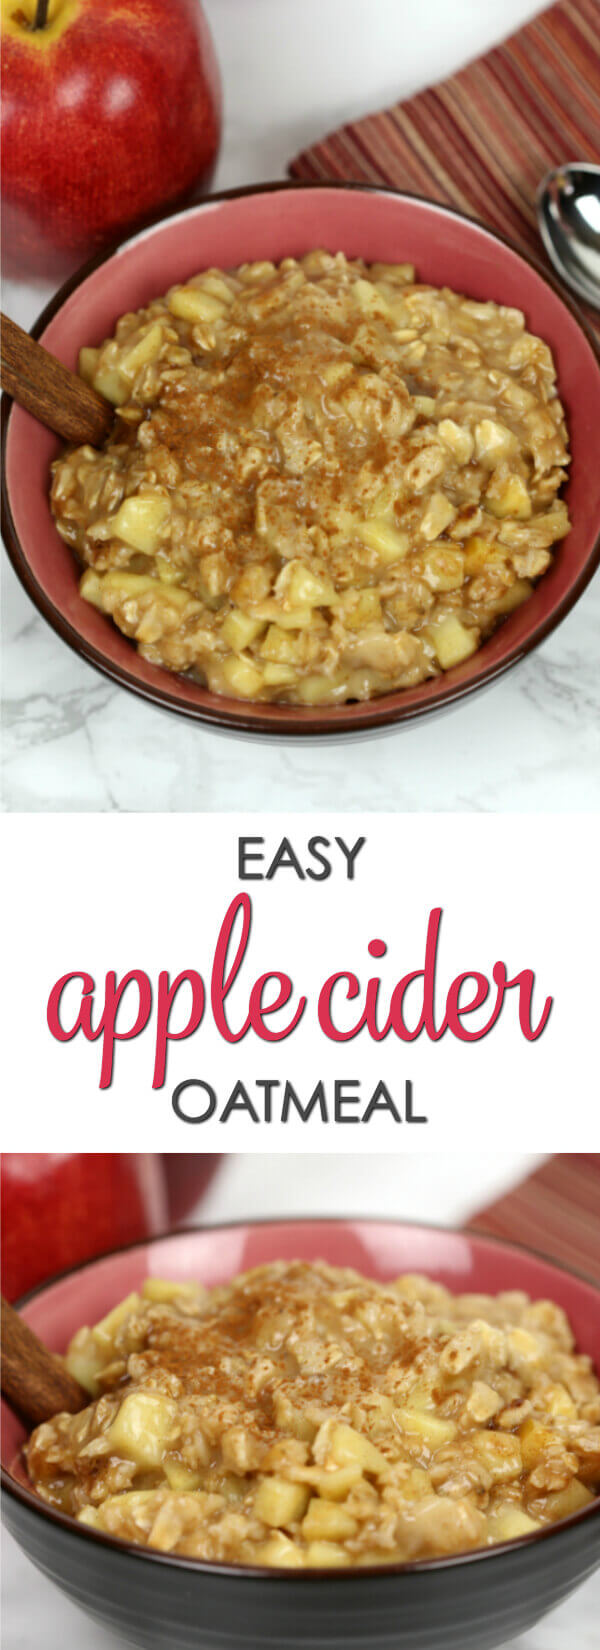 Apple Cider Oatmeal - this wholesome breakfast recipe is easy to make and perfect for chilly mornings